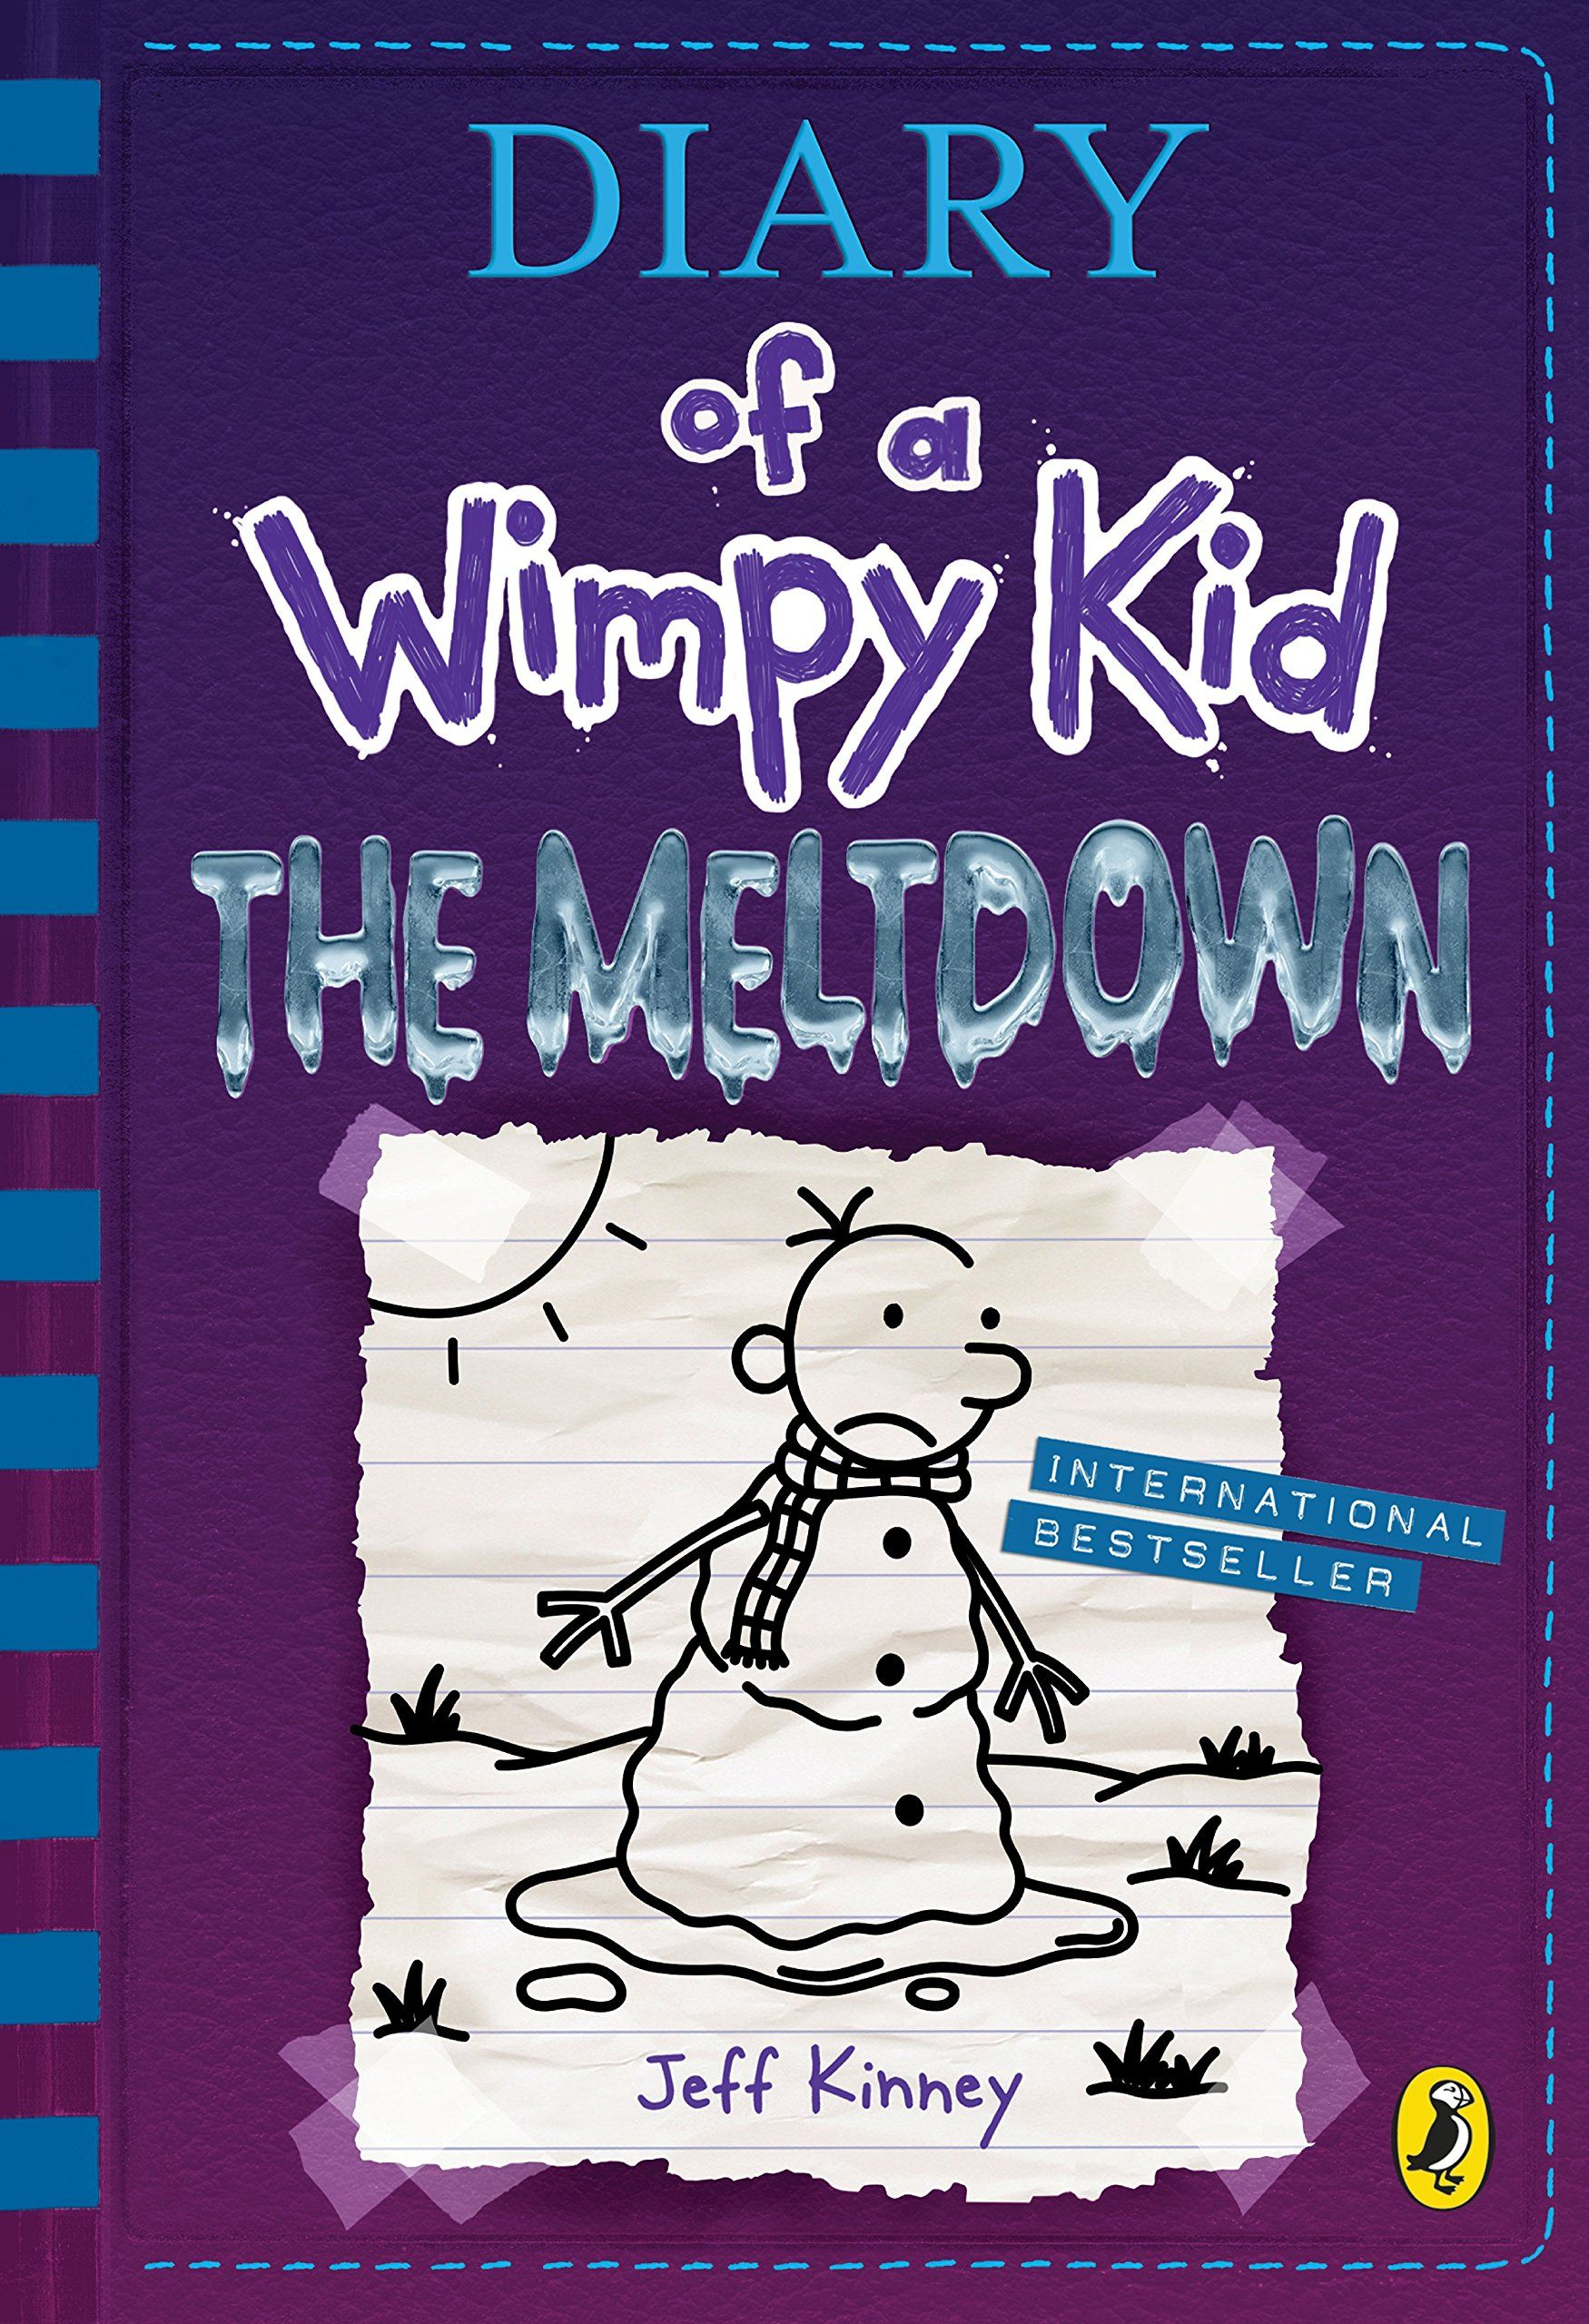 DIARY OF A WIMPY KID BOOK 13 THE MELTDOWN